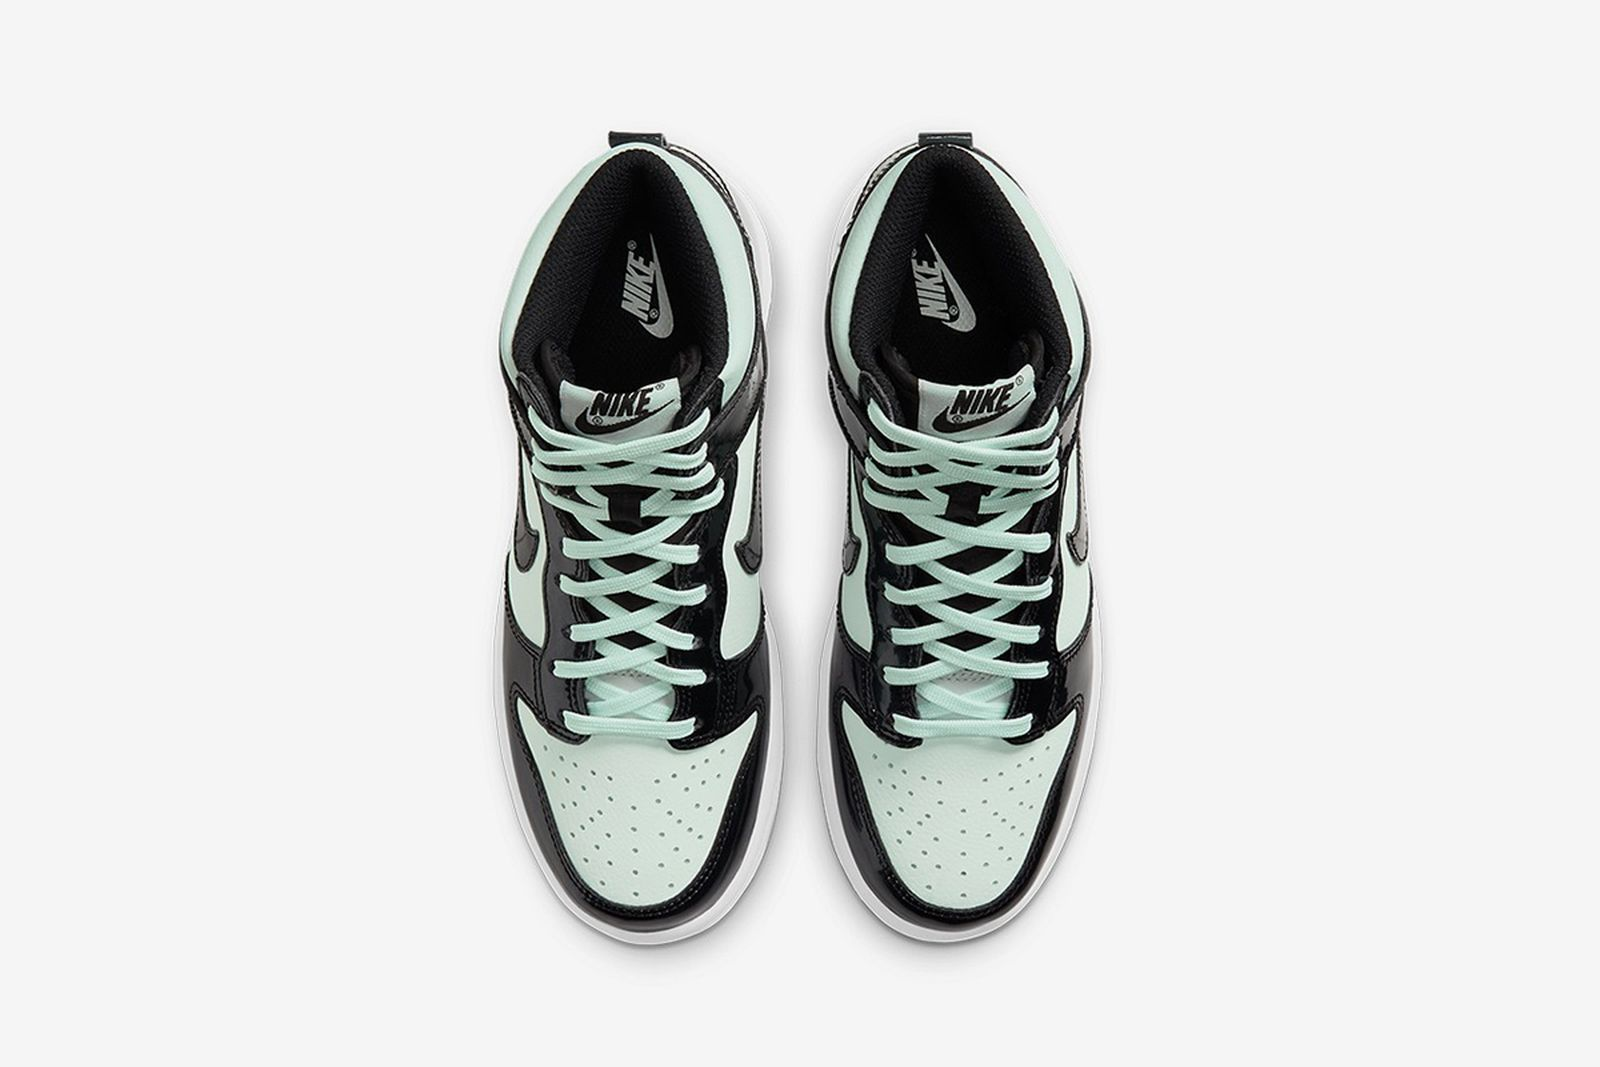 nike-dunk-high-all-star-2021-release-date-price-04